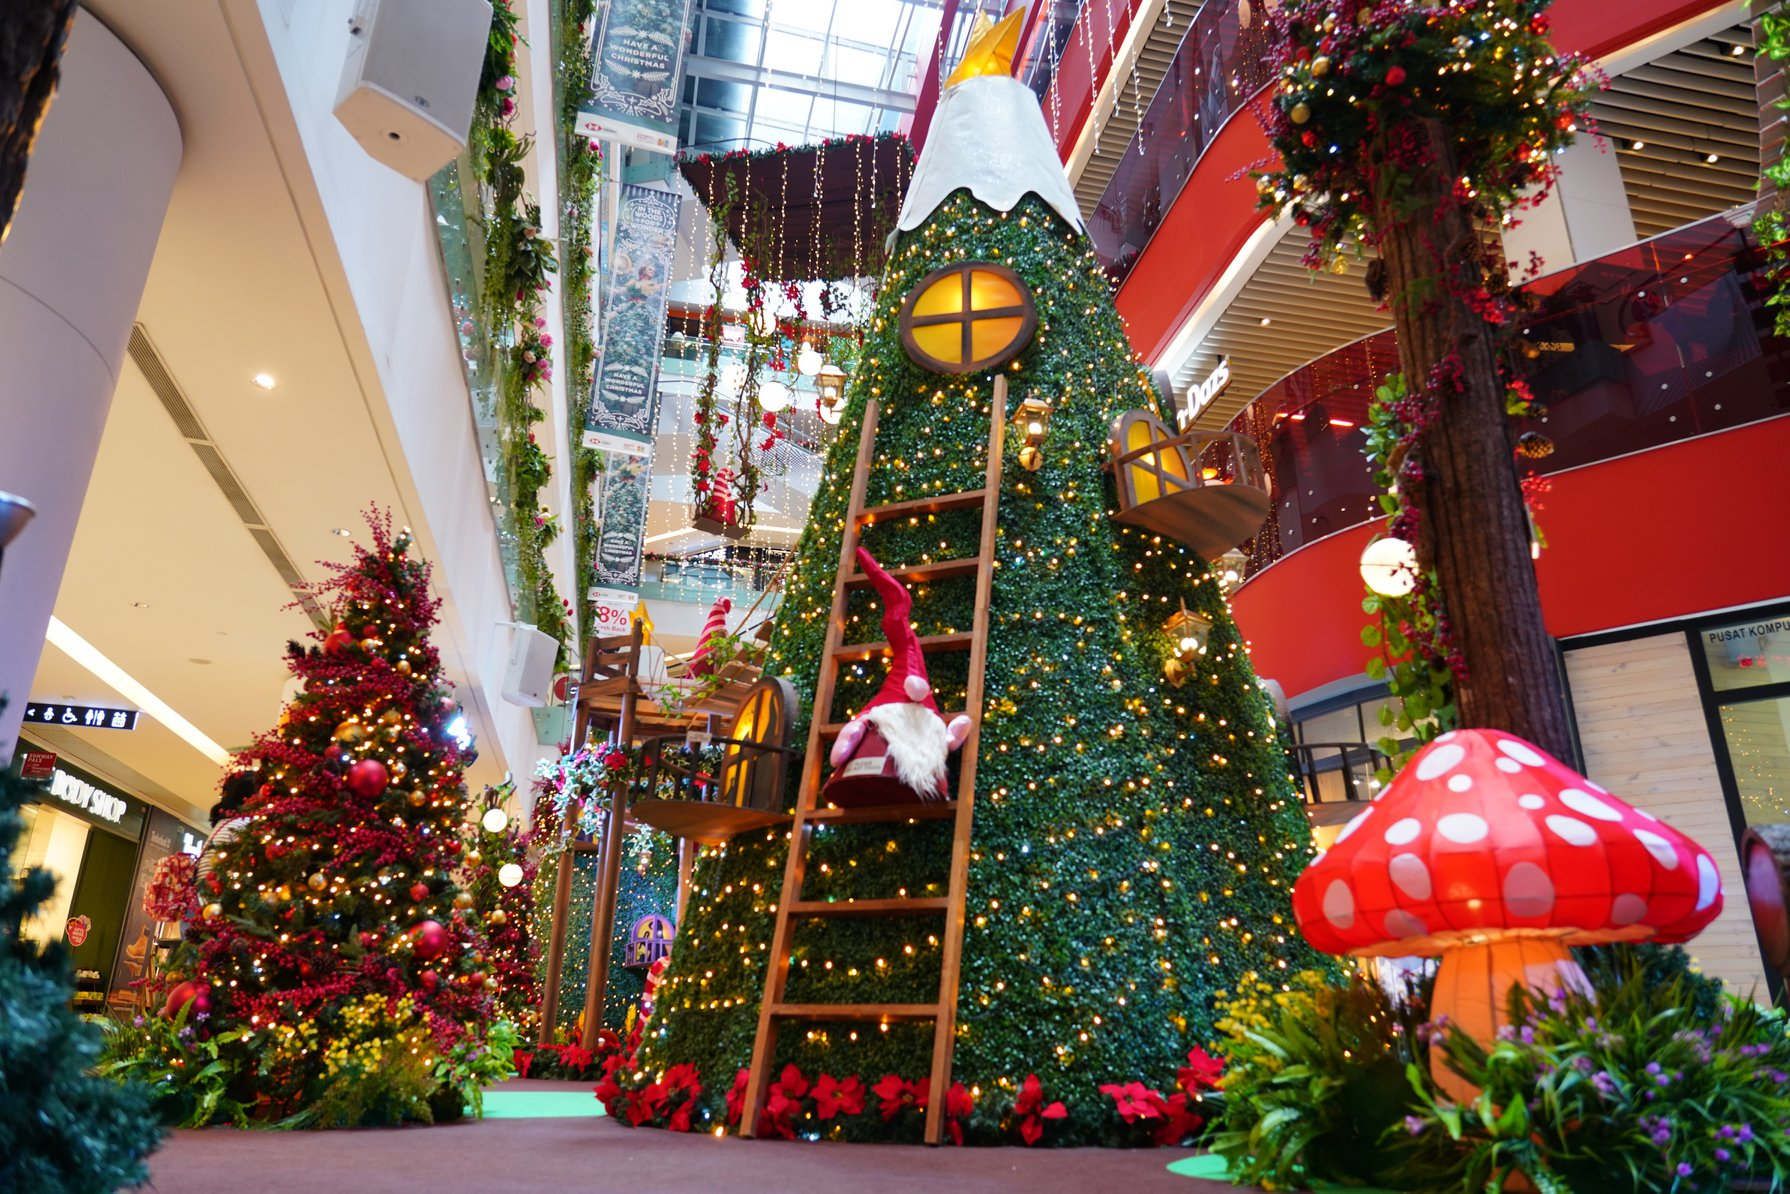 Image from Sunway Putra Mall